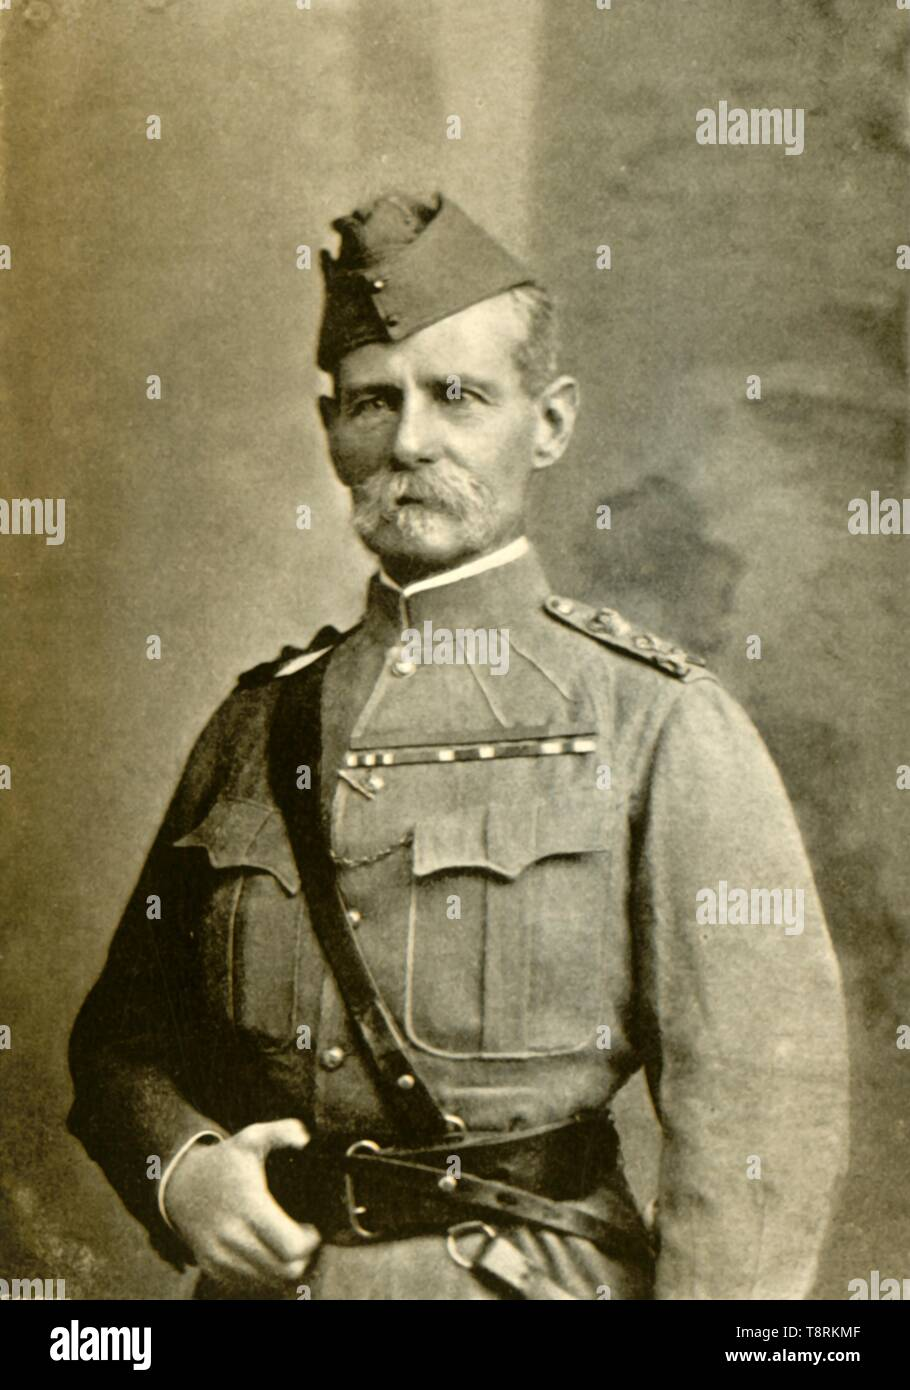 'General Sir F. S. Roberts, Bart. (Dress during the Burmah Expedition)', c1890s, (1901).  Creator: Bourne & Shepherd. - Stock Image